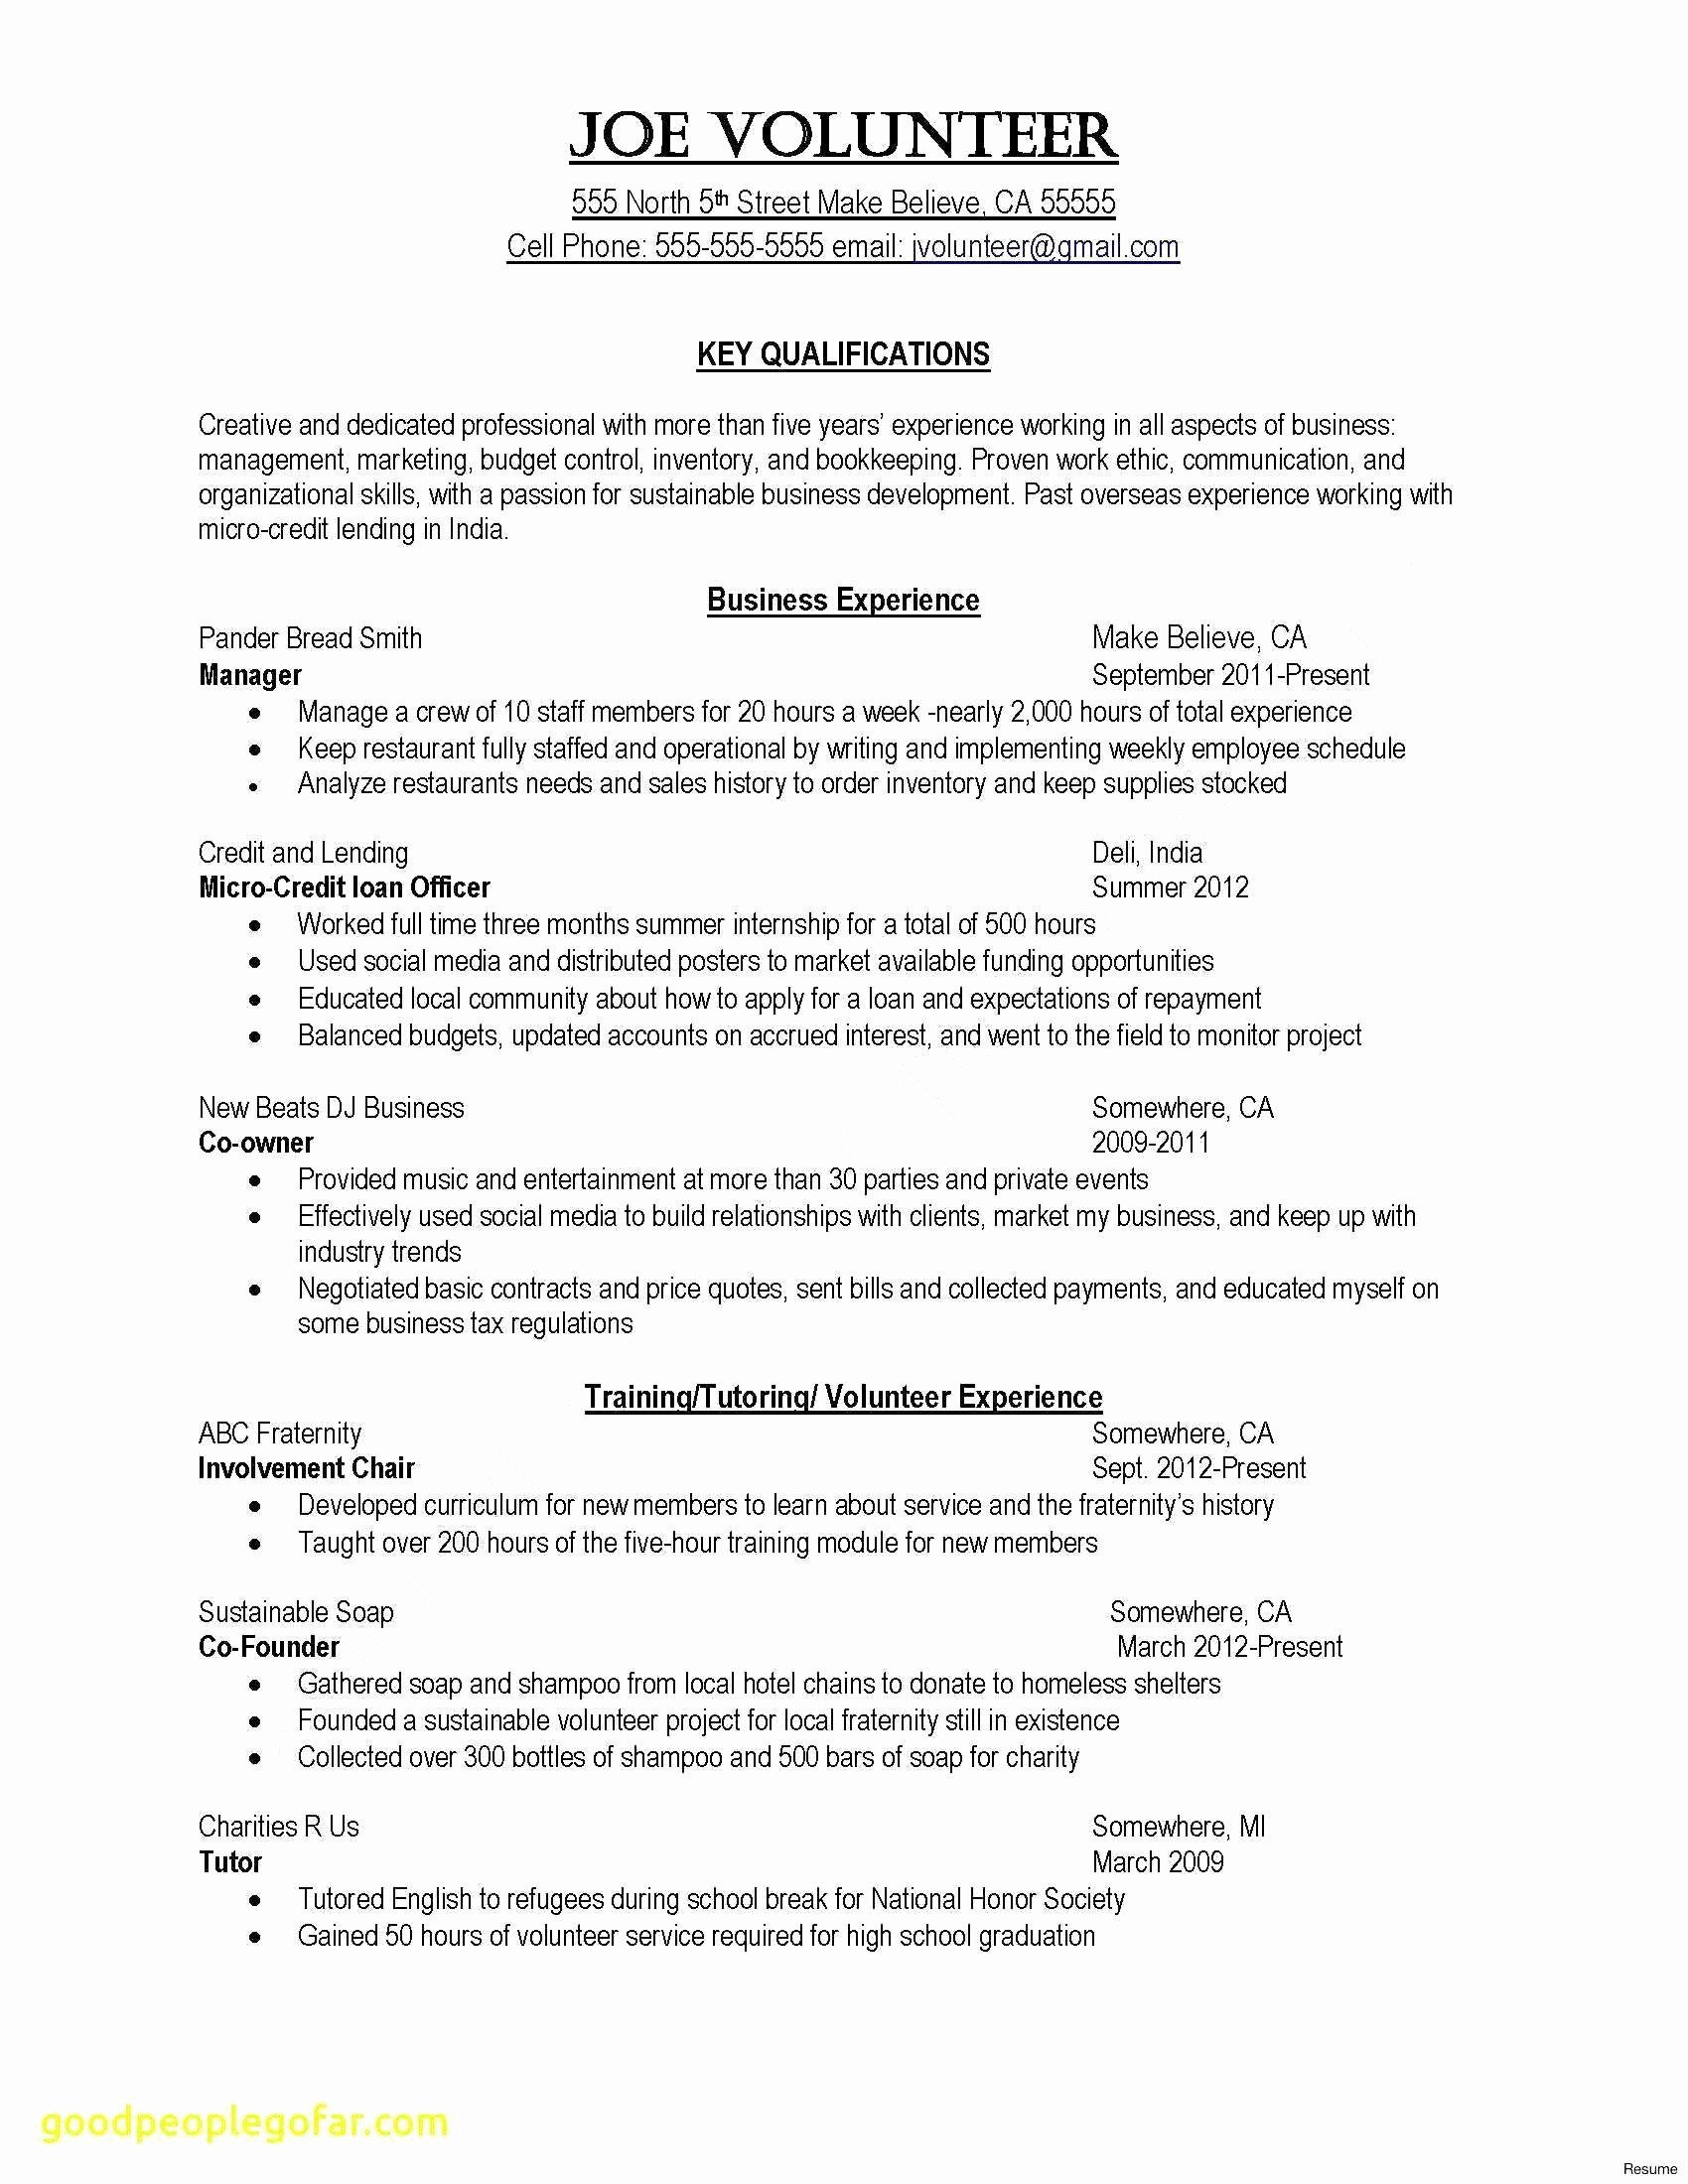 free resume builder reddit awesome background music mallerstang project manager writing Resume Best Resume Writing Service Reddit